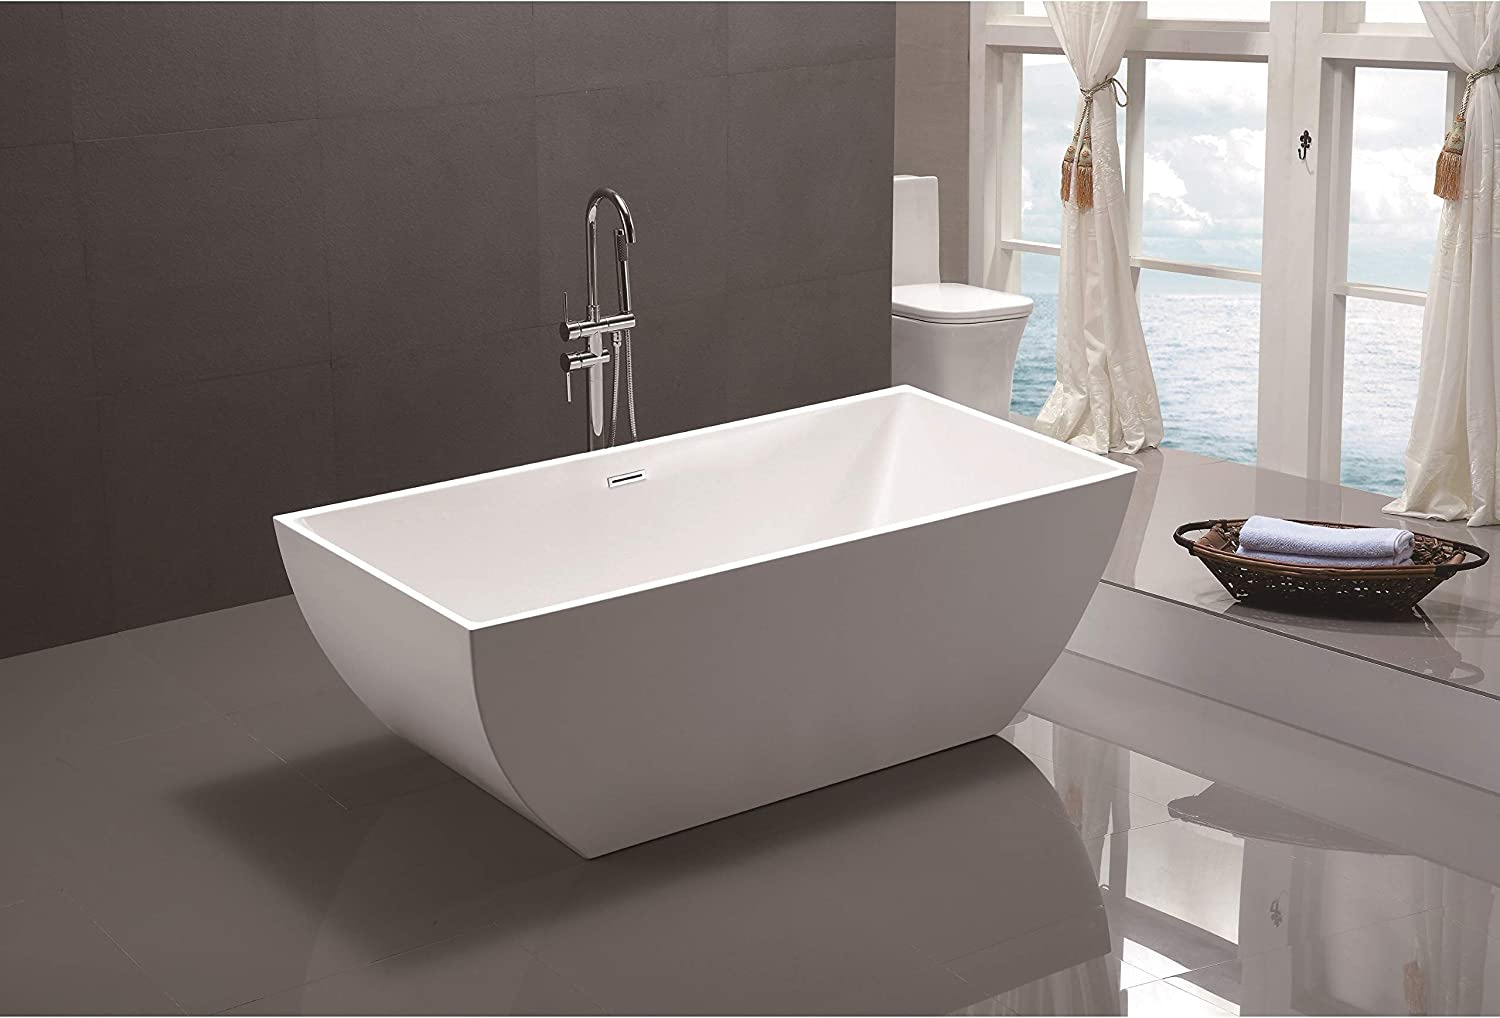 Vanity Art 59 Inch Freestanding Acrylic Bathtub Modern Stand Alone Soaking Tub with Chrome Finish, UPC Certified, Slotted Overflow Pop-up Drain – VA6821-S